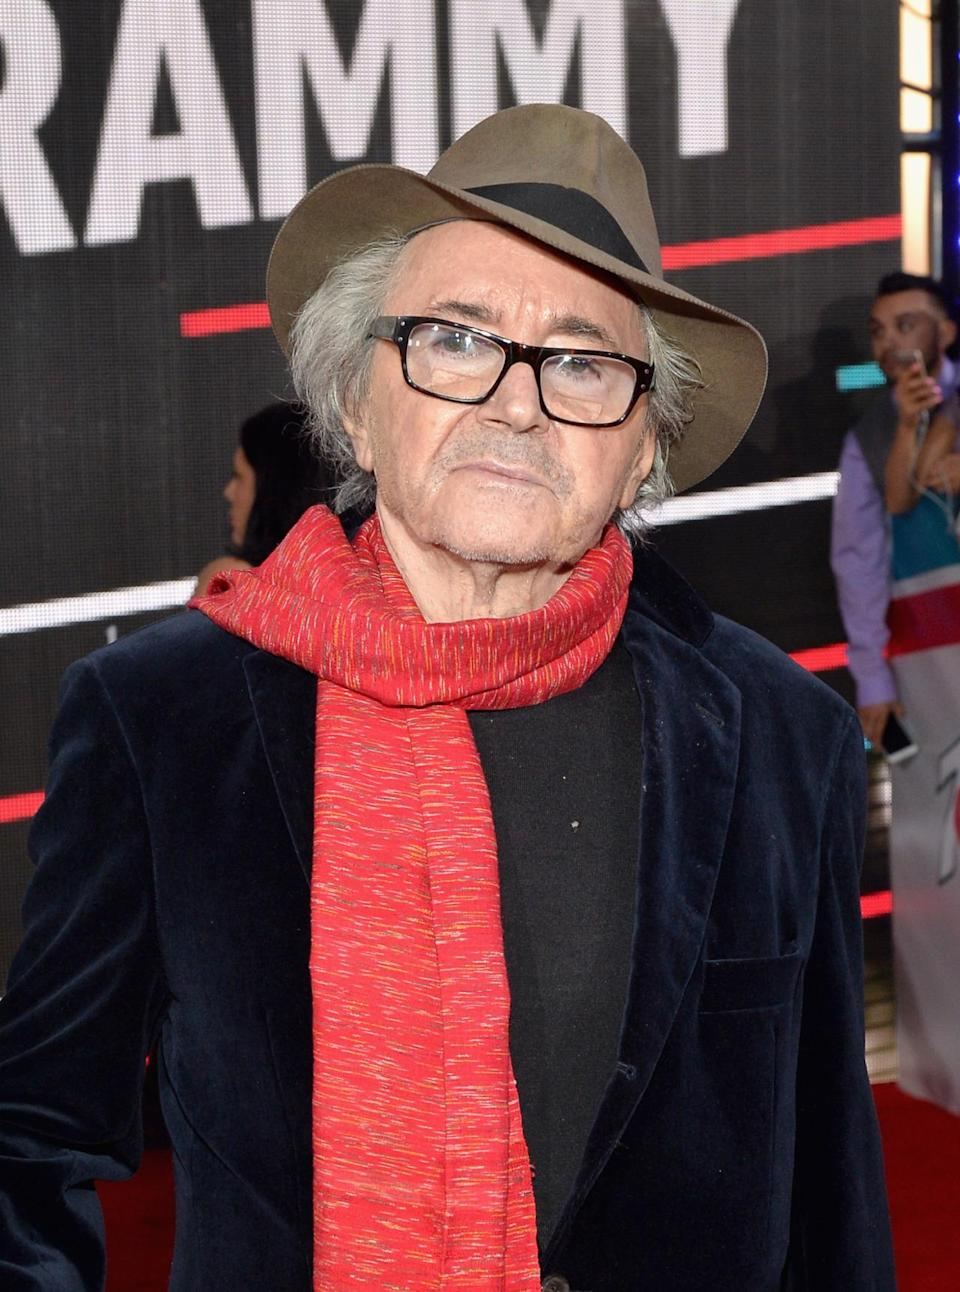 Gato Barbieri was an Argentine jazz tenor saxophonist and composer who rose to fame during the free jazz movement in the 1960s. He died April 2 at age 83. (Photo: WireImage)